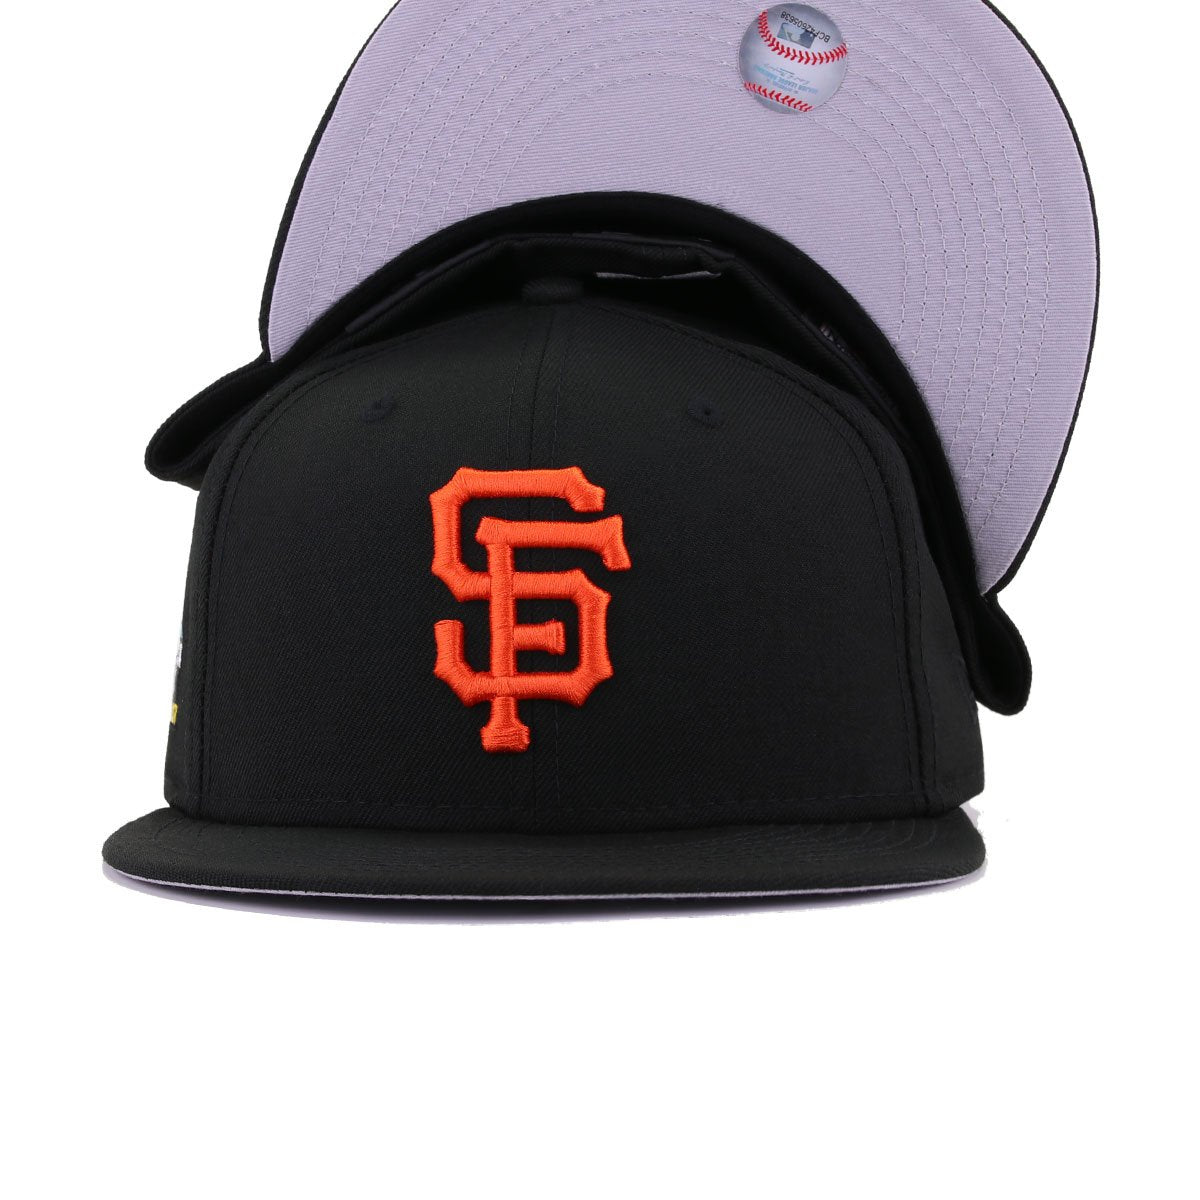 San Francisco Giants Black 2007 All Star Week New Era 59Fifty Fitted